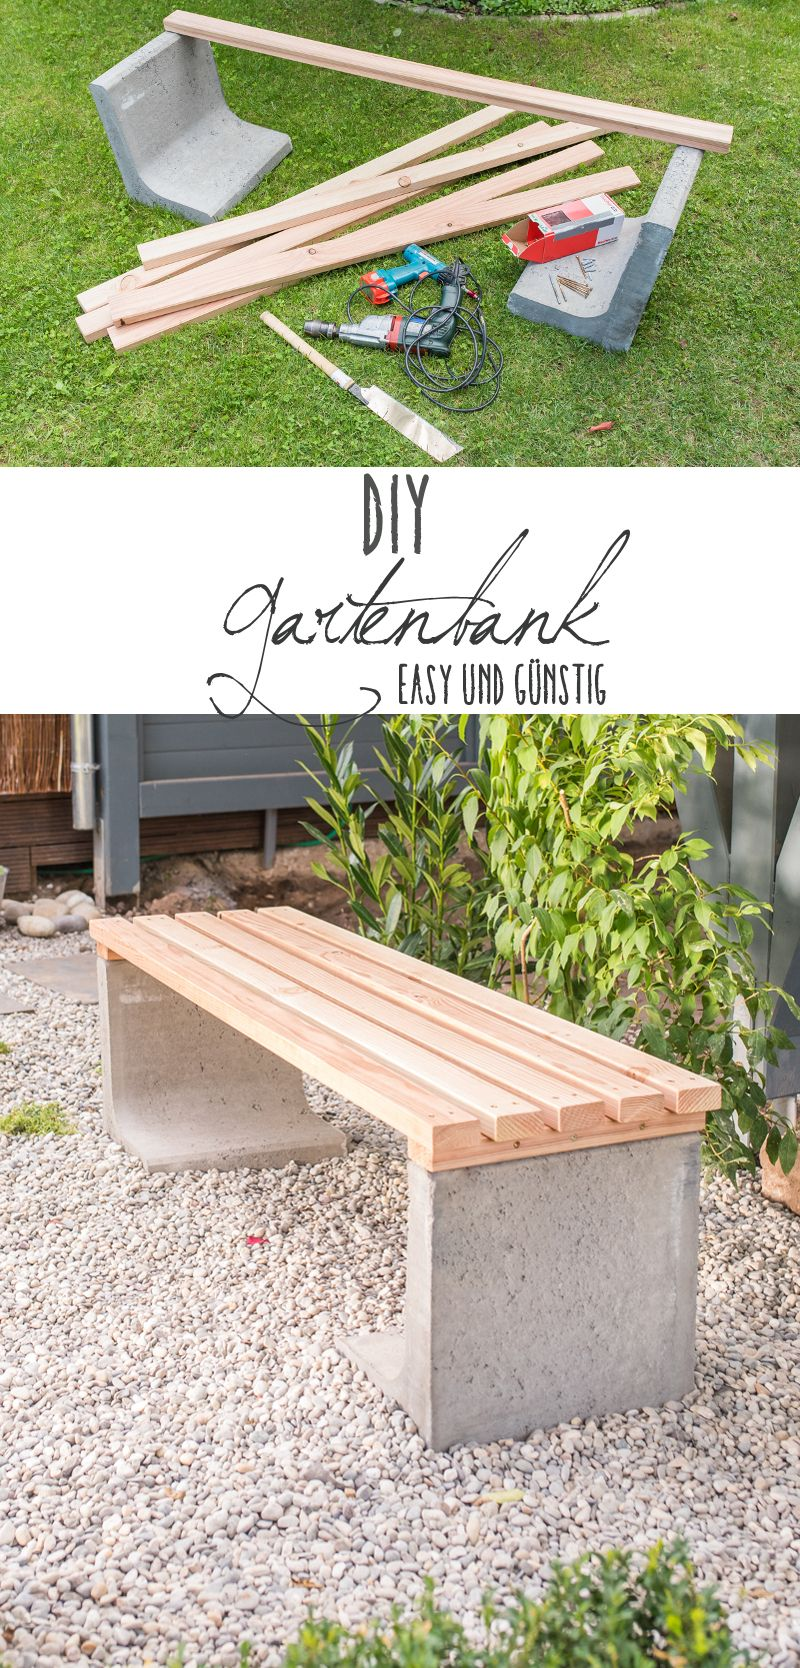 diy gartenbank mit beton und holz pinterest gartenb nke holz und anleitungen. Black Bedroom Furniture Sets. Home Design Ideas